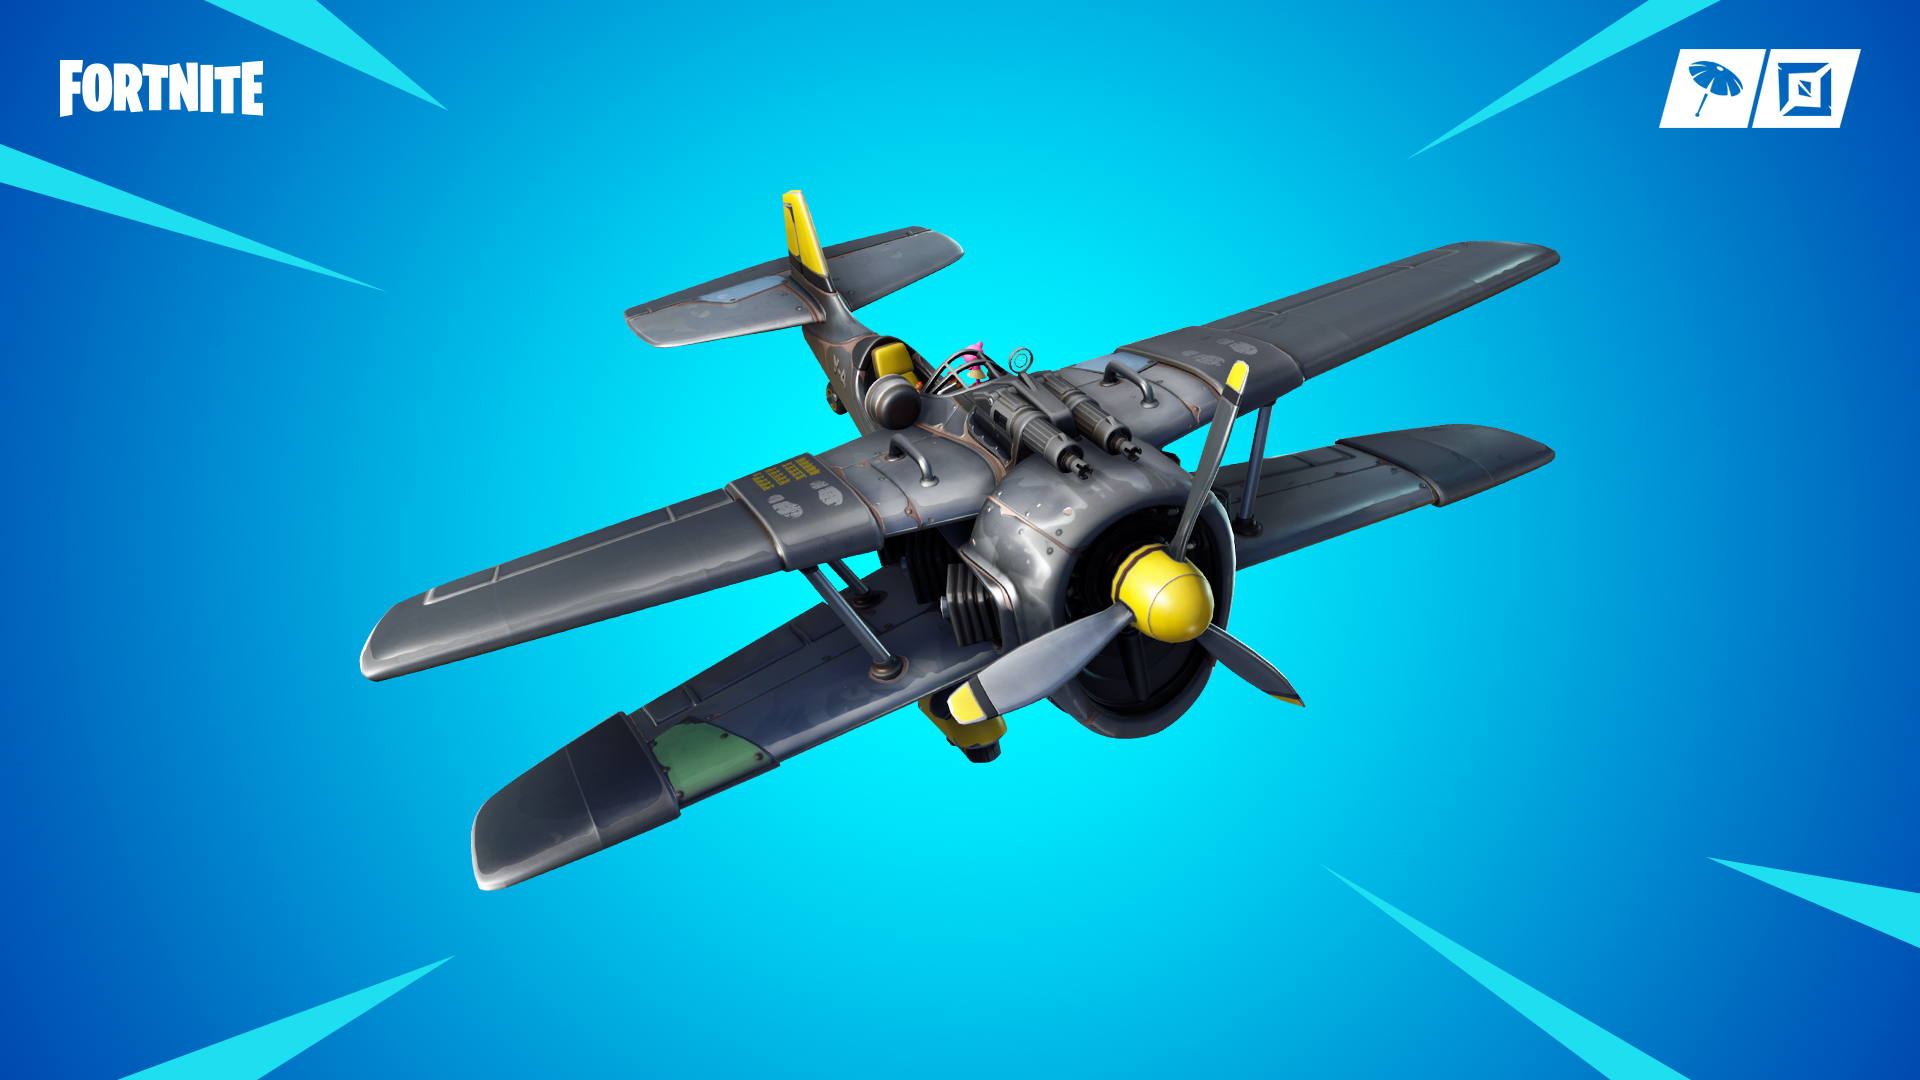 Fortnite saison 7 avion